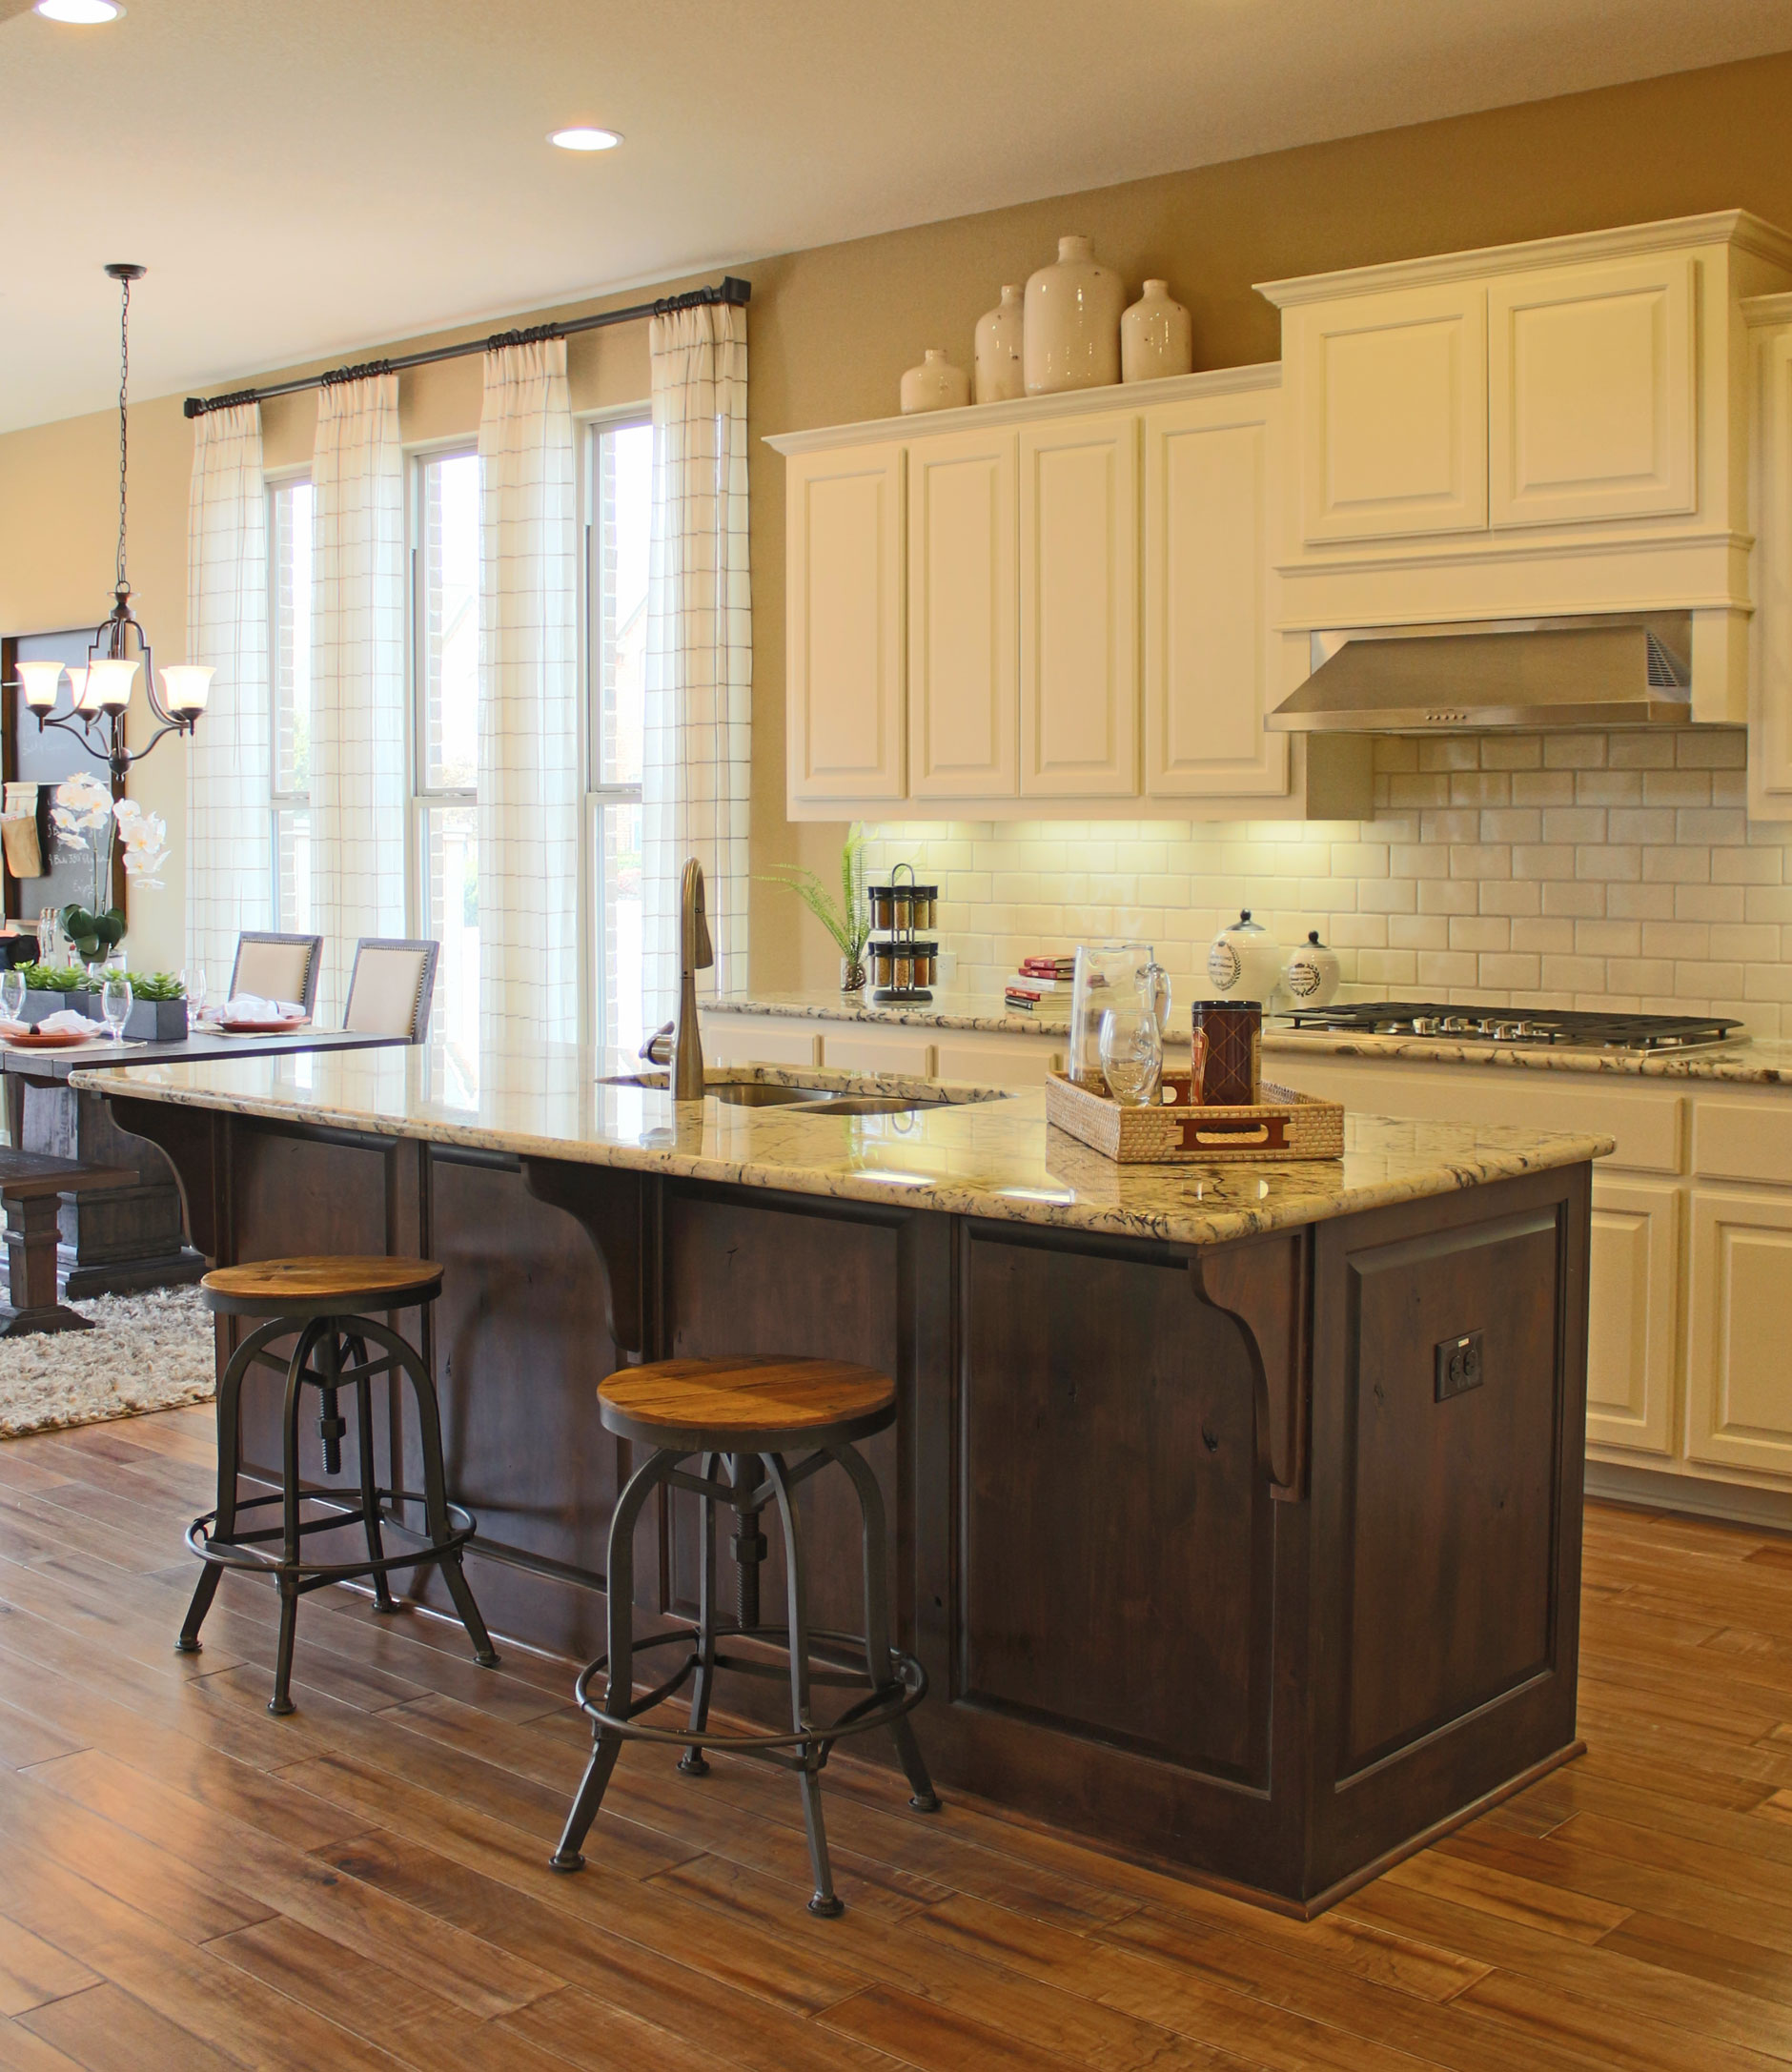 Kitchen Island - Burrows Cabinets - central Texas builder ...